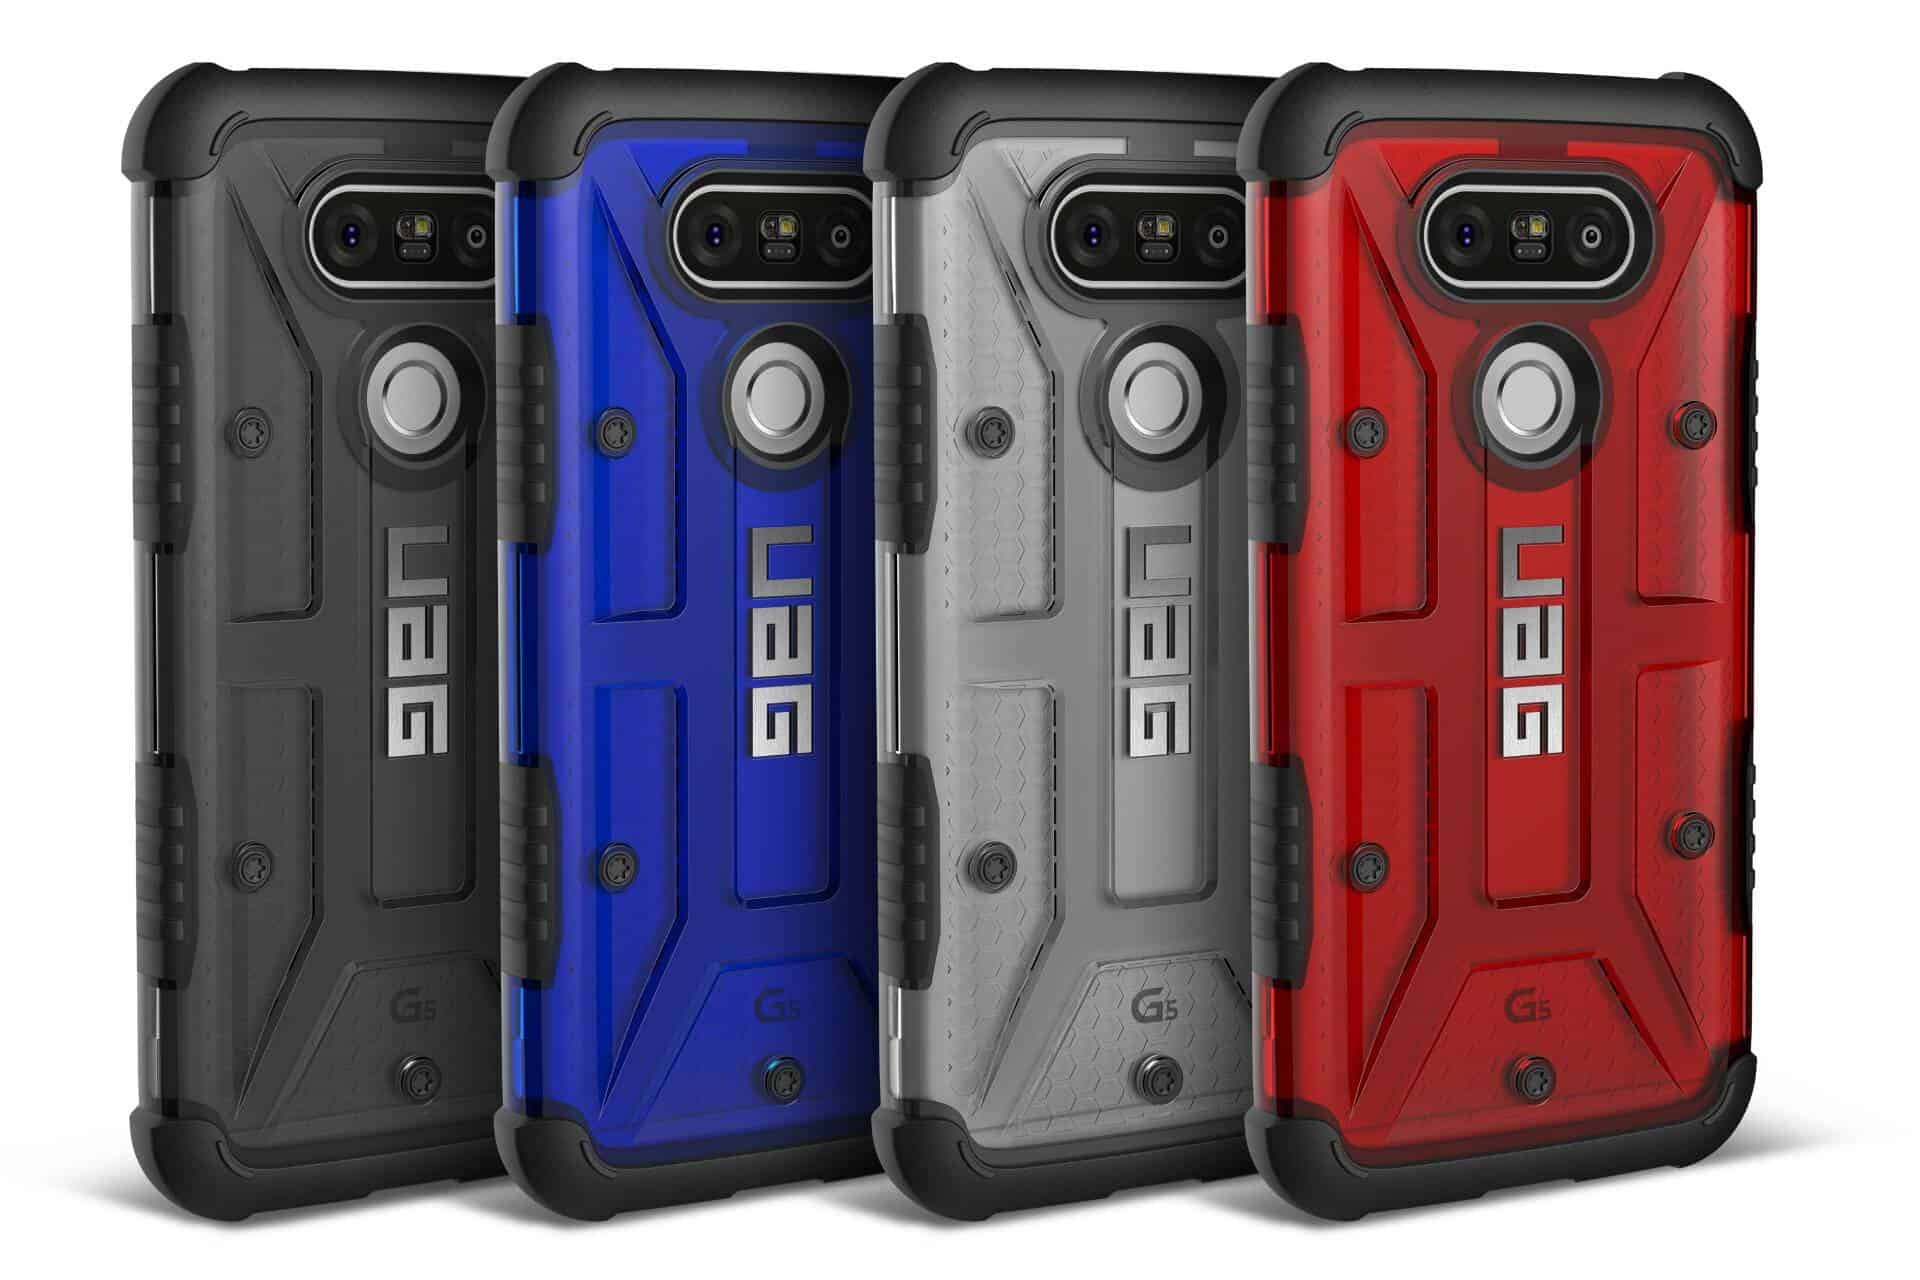 Urban Armor Gear Launches Drop-Tested Cases For LG G5